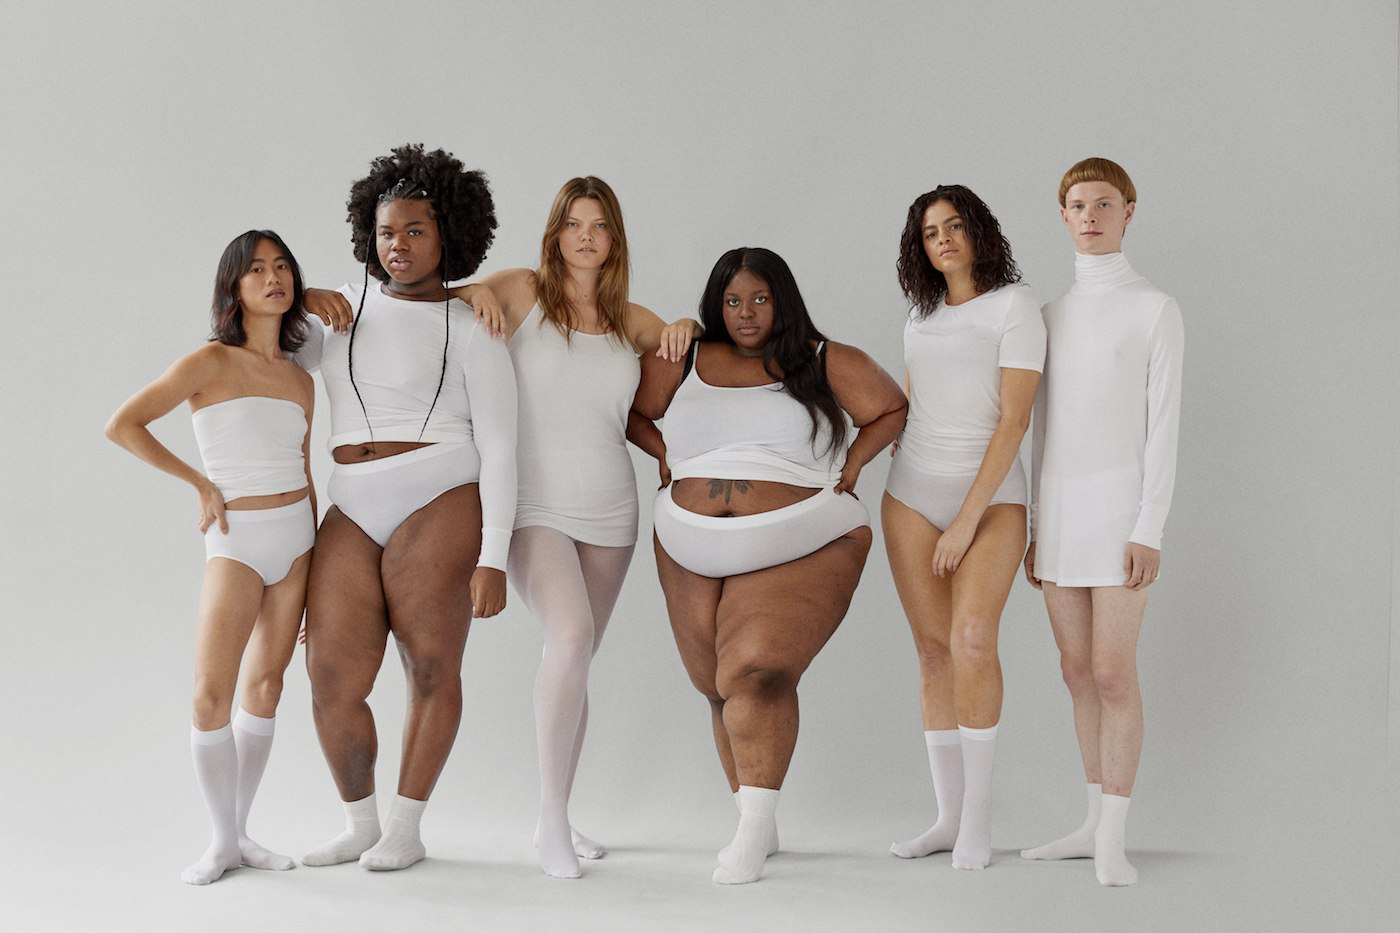 Thumbnail for More fashion brands are jumping on the size inclusive bandwagon, here's how to tell which ones are legit